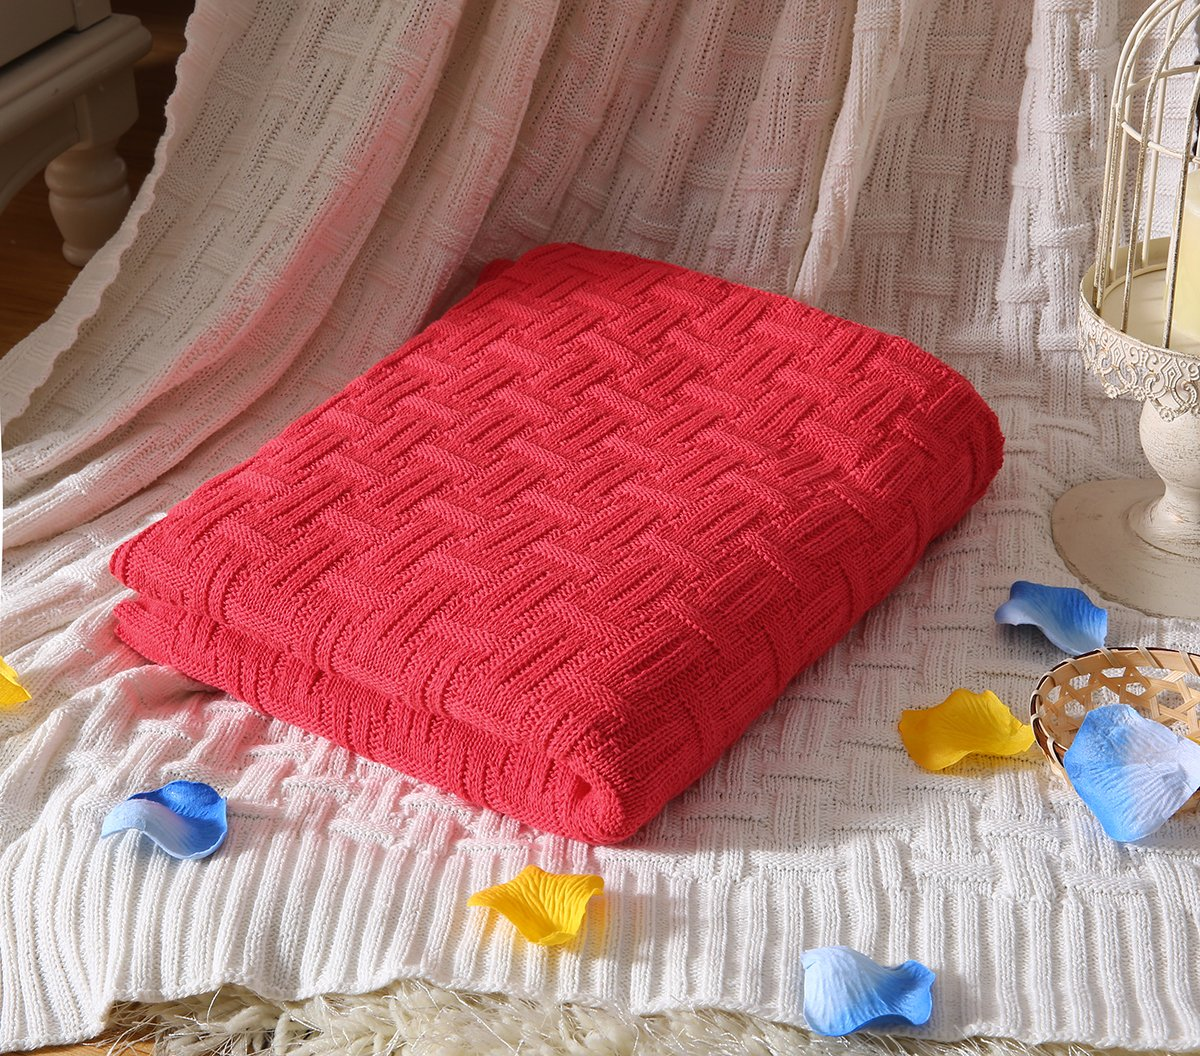 iSunShine Cotton Knitted Throw Soft Warm Cover Weaving Parttern Blanket, 43 * 70 Inches, Red JSIEC COMIN16JU014062